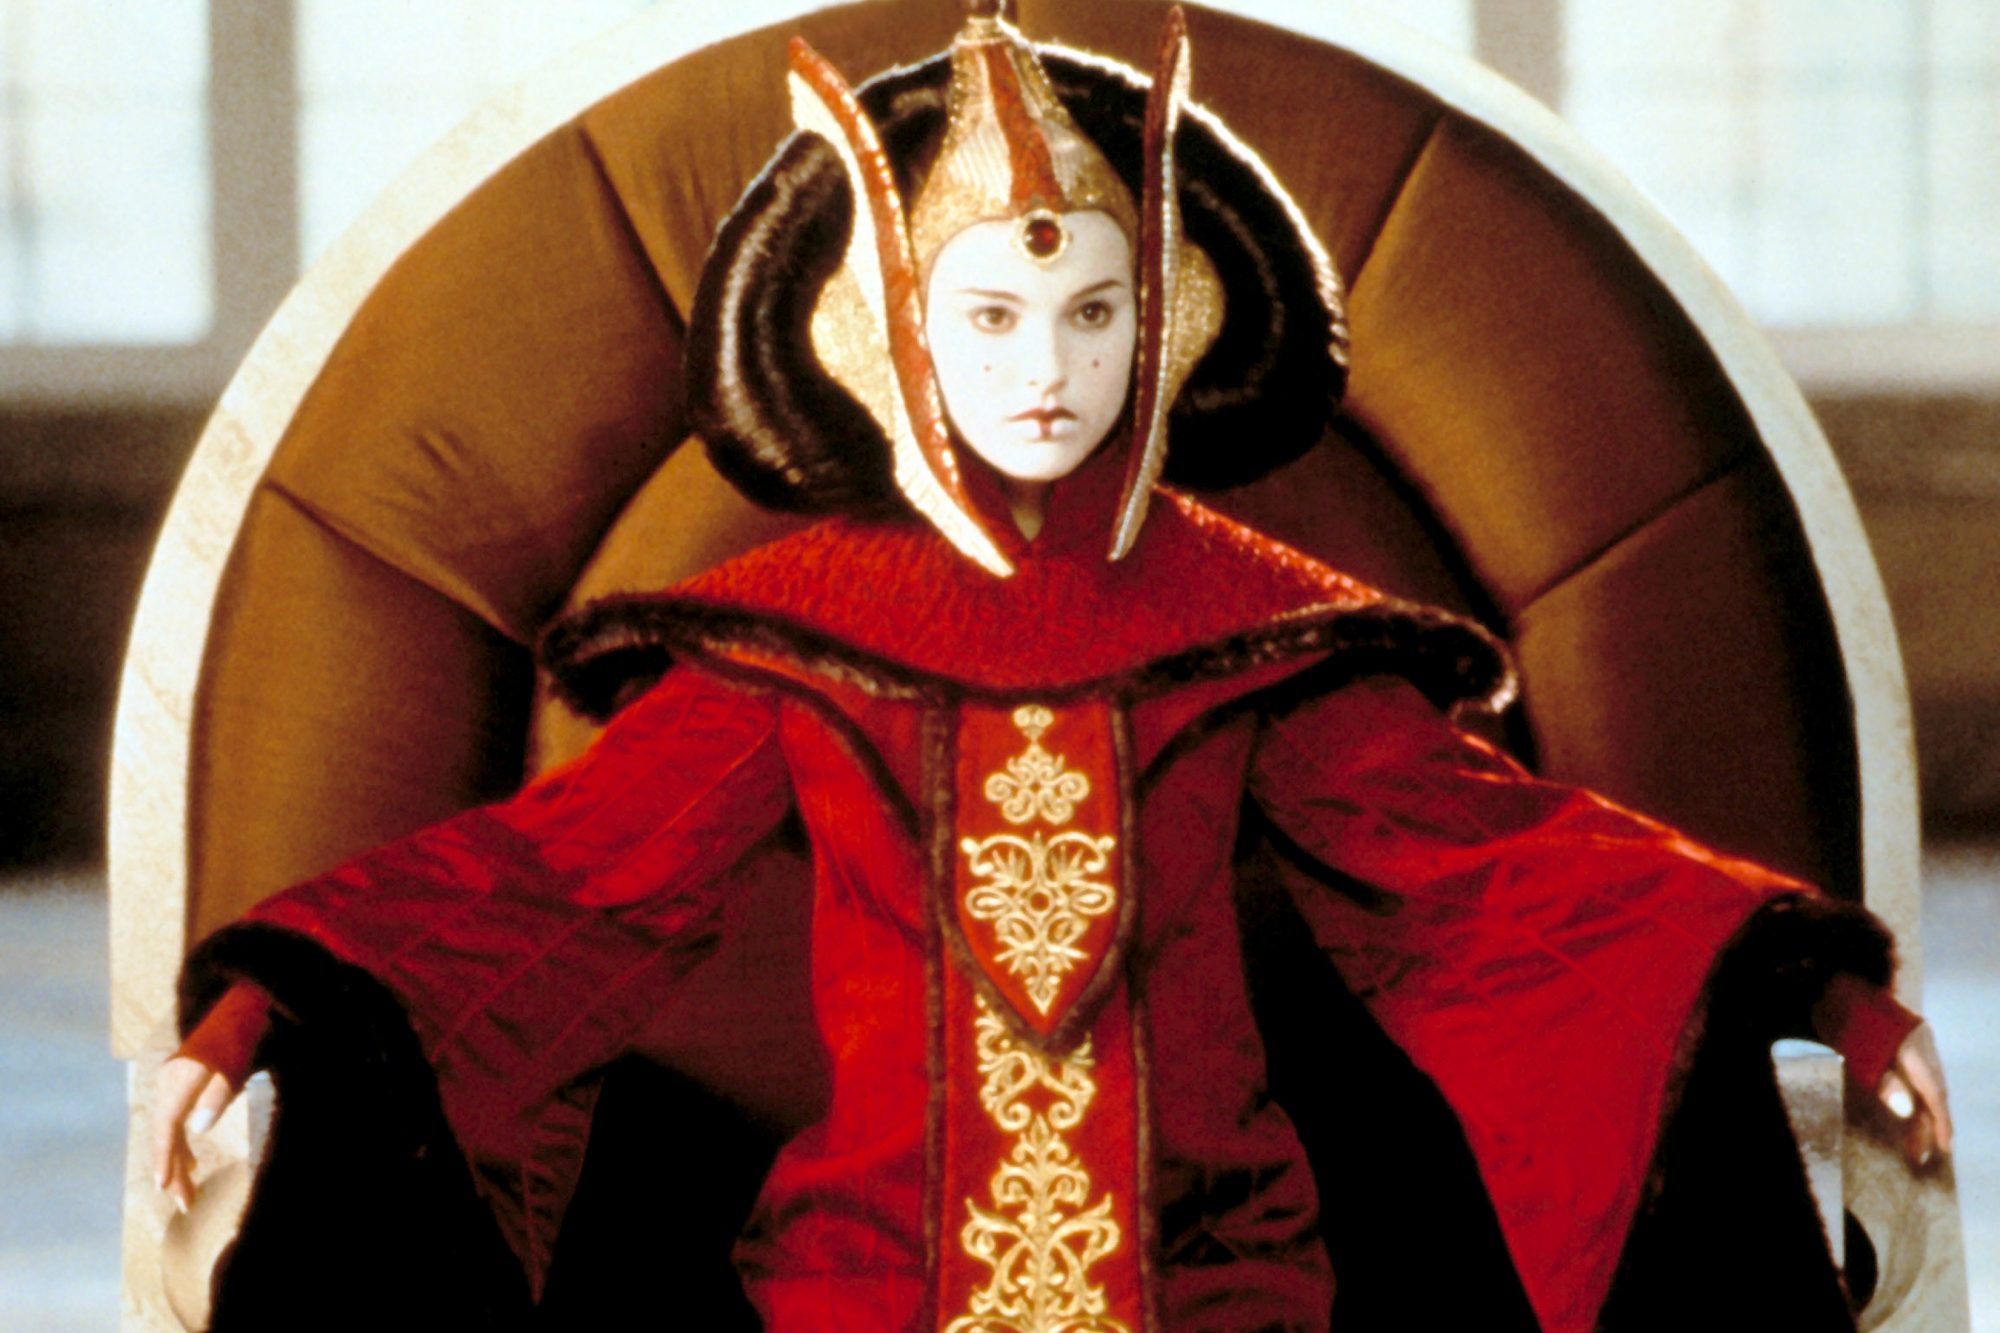 STAR WARS: Episode I Phantom Menace, Natalie Portman, 1999